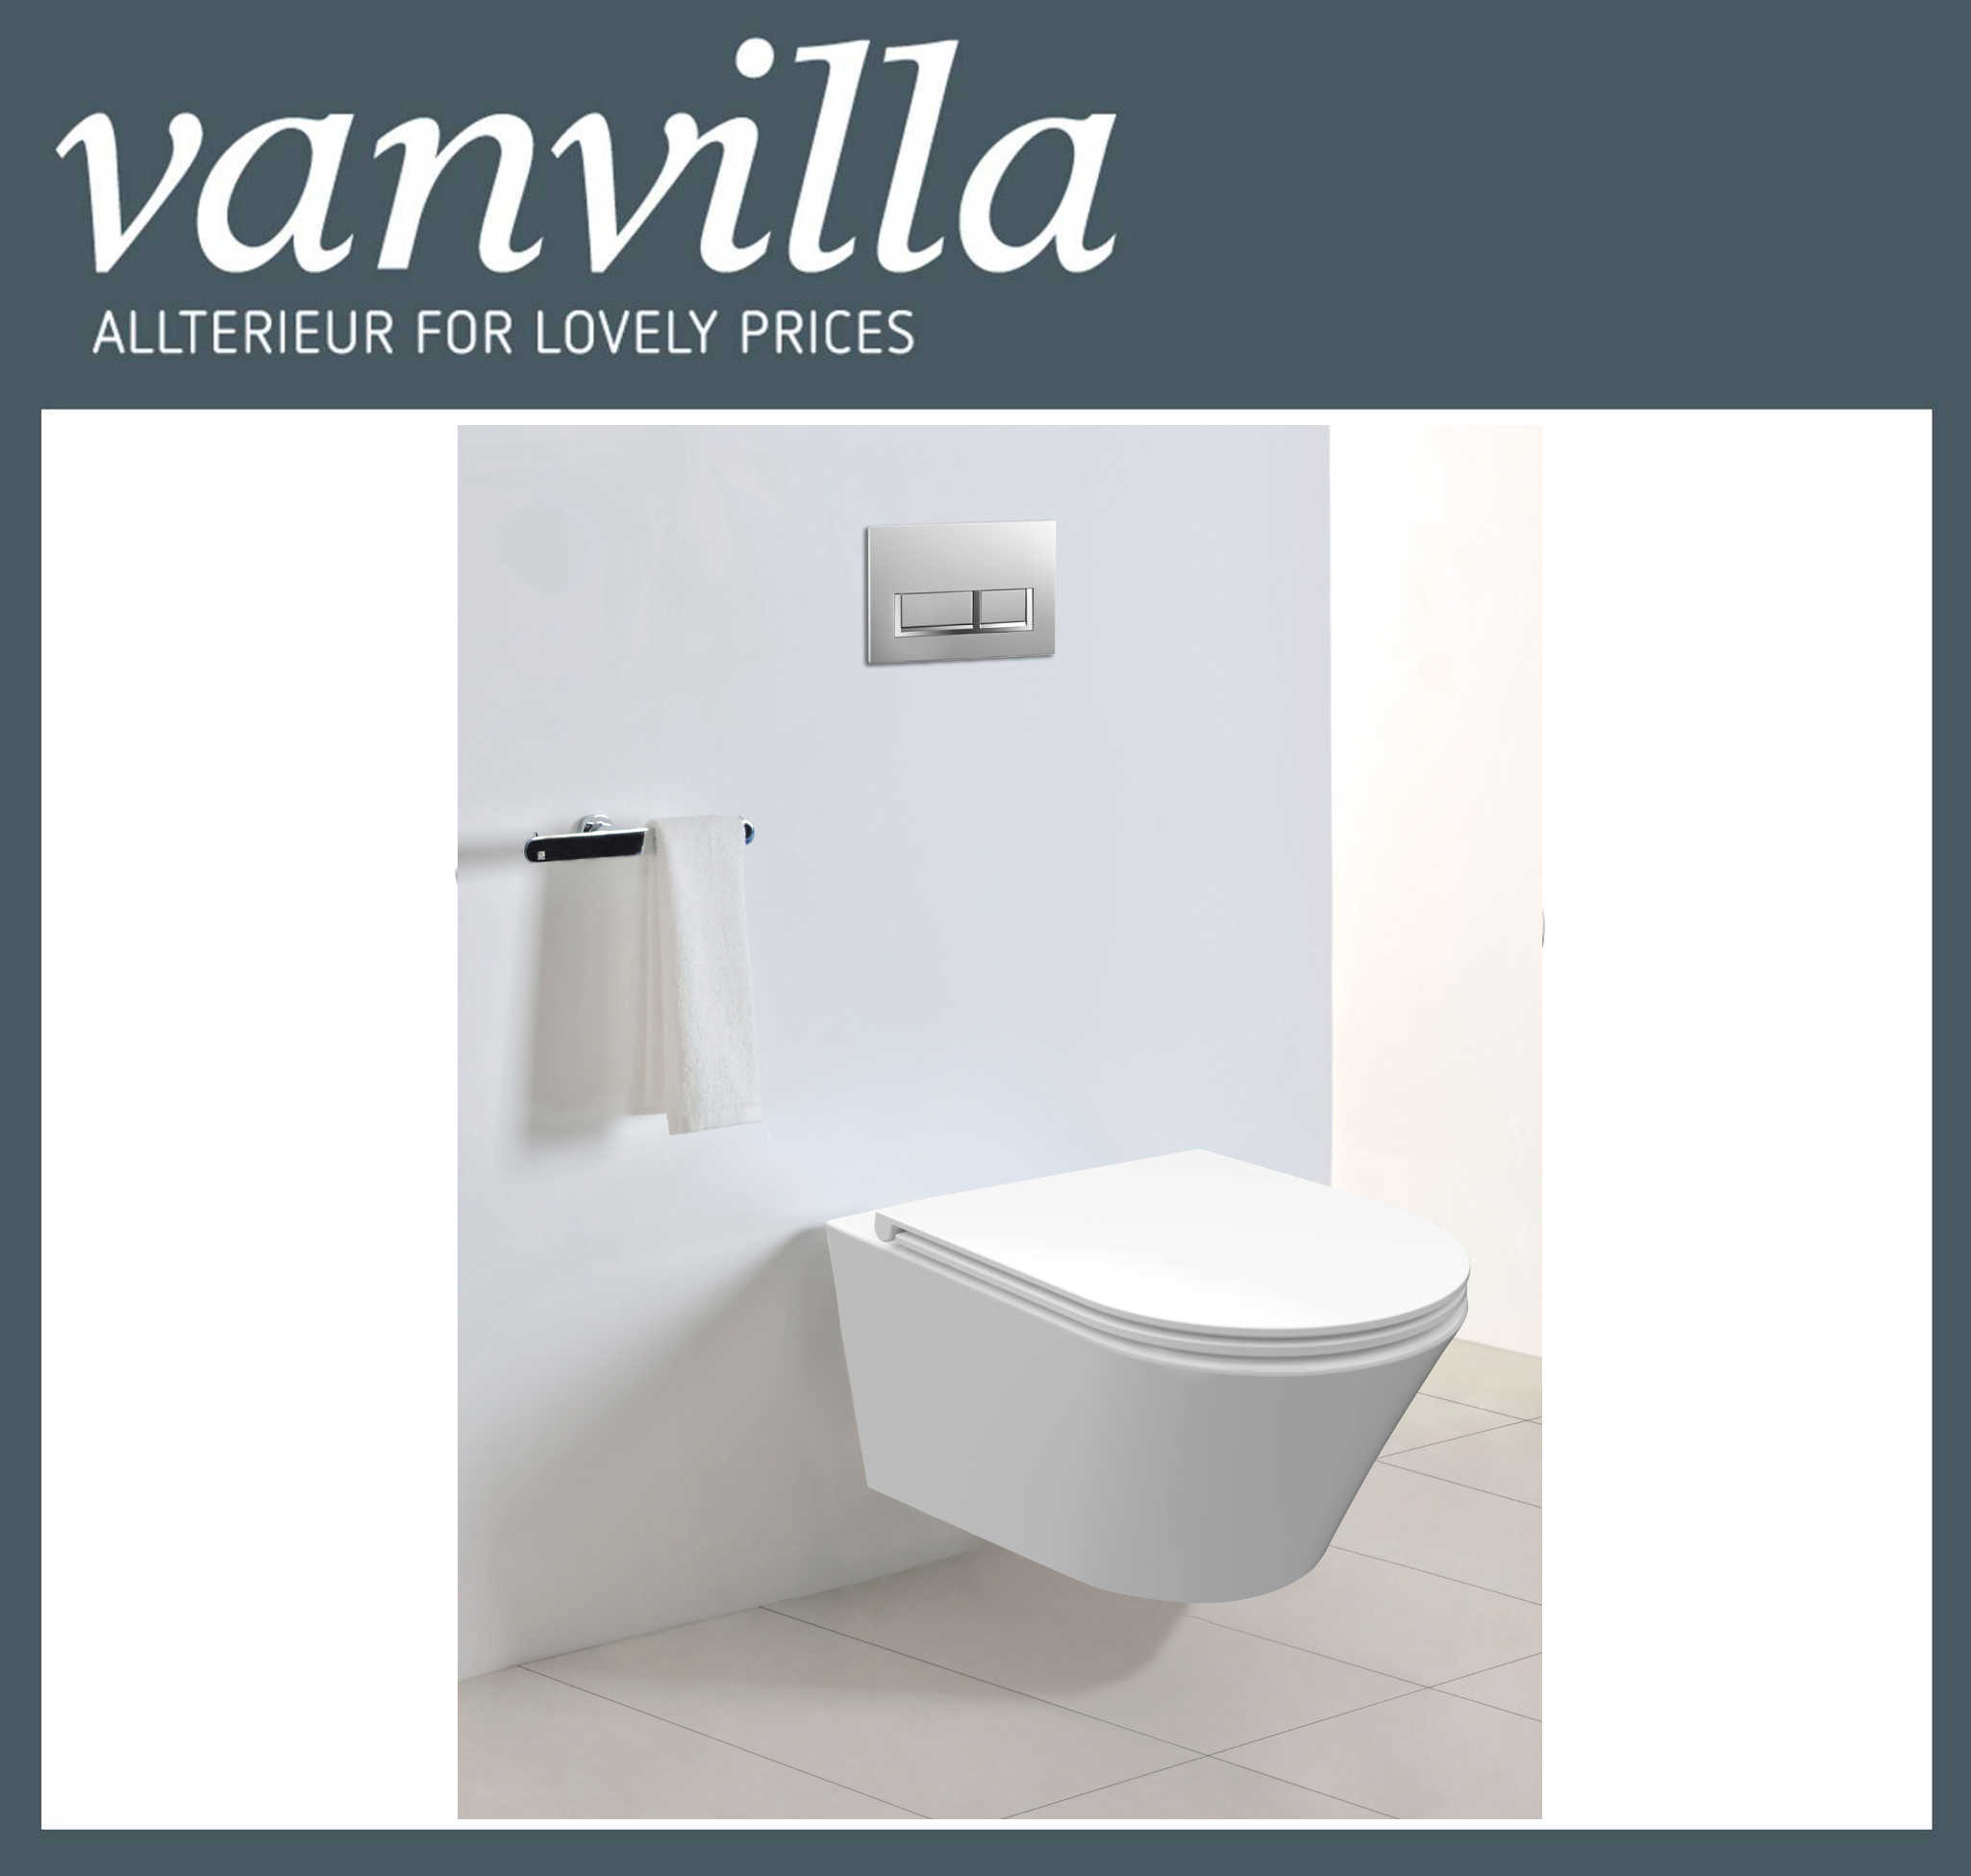 vanvilla Design Wand Hänge WC Luanda inkl. Soft close spülrandlos rimless